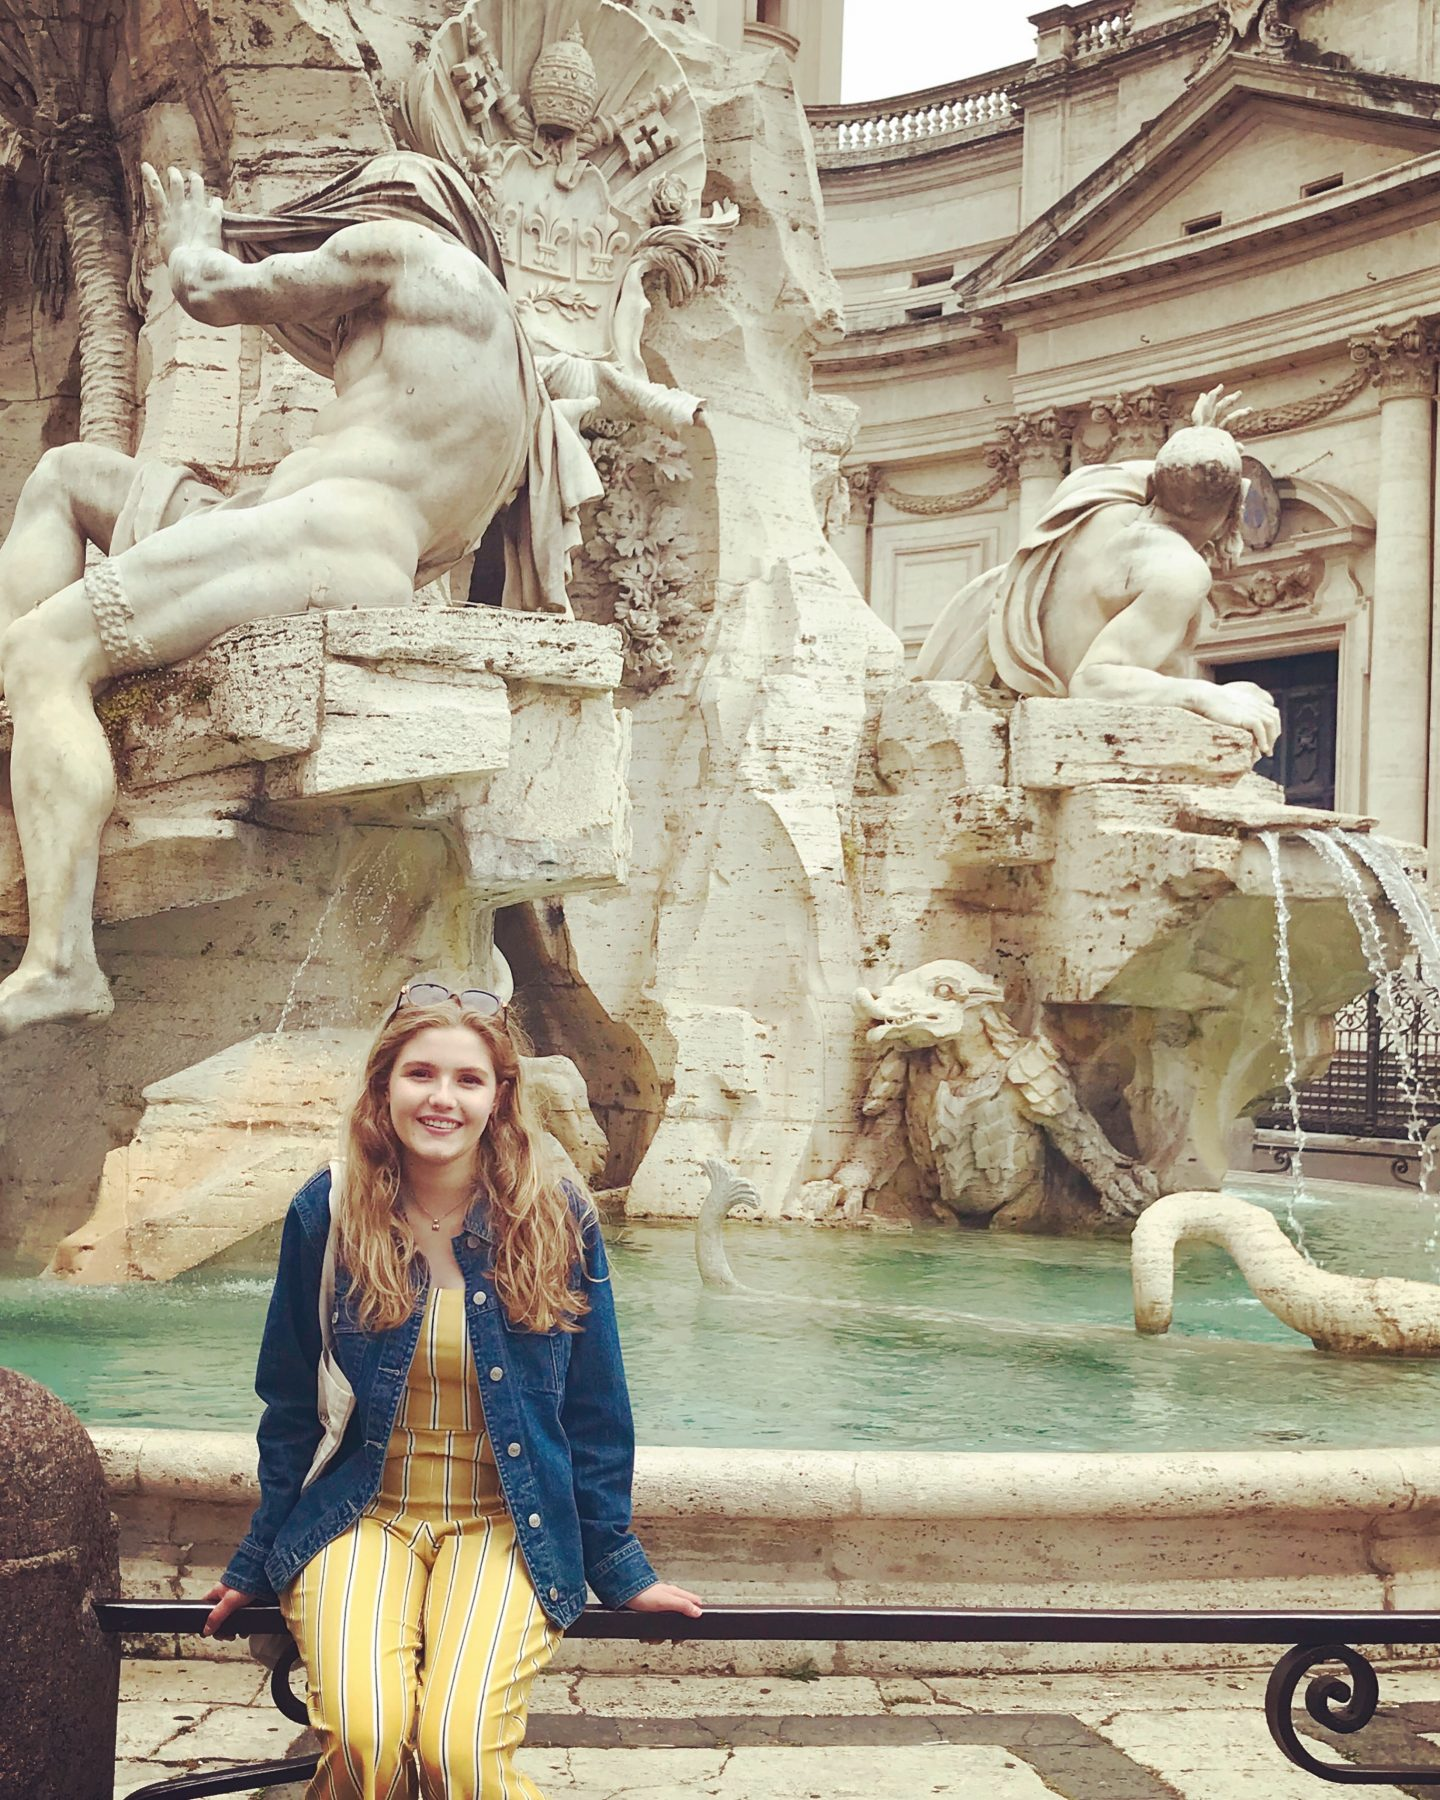 Rome fountains